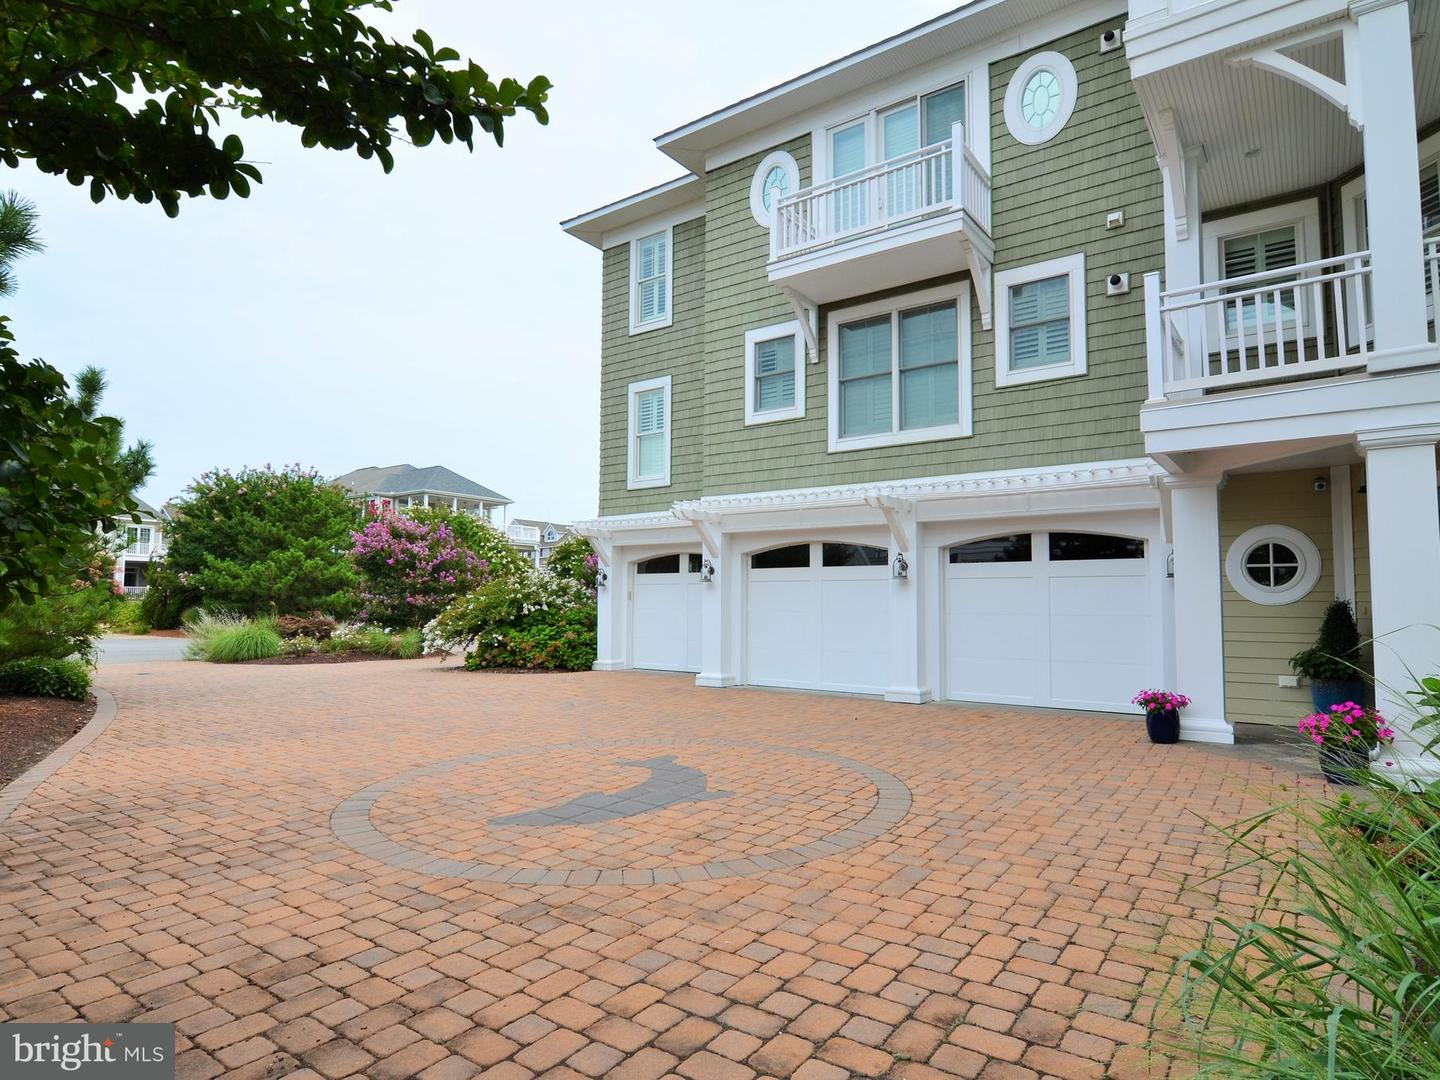 1002293530-300500805889-2018-09-25-15-08-24 31 Hall Ave | Rehoboth Beach, DE Real Estate For Sale | MLS# 1002293530  - Jack Lingo REALTOR